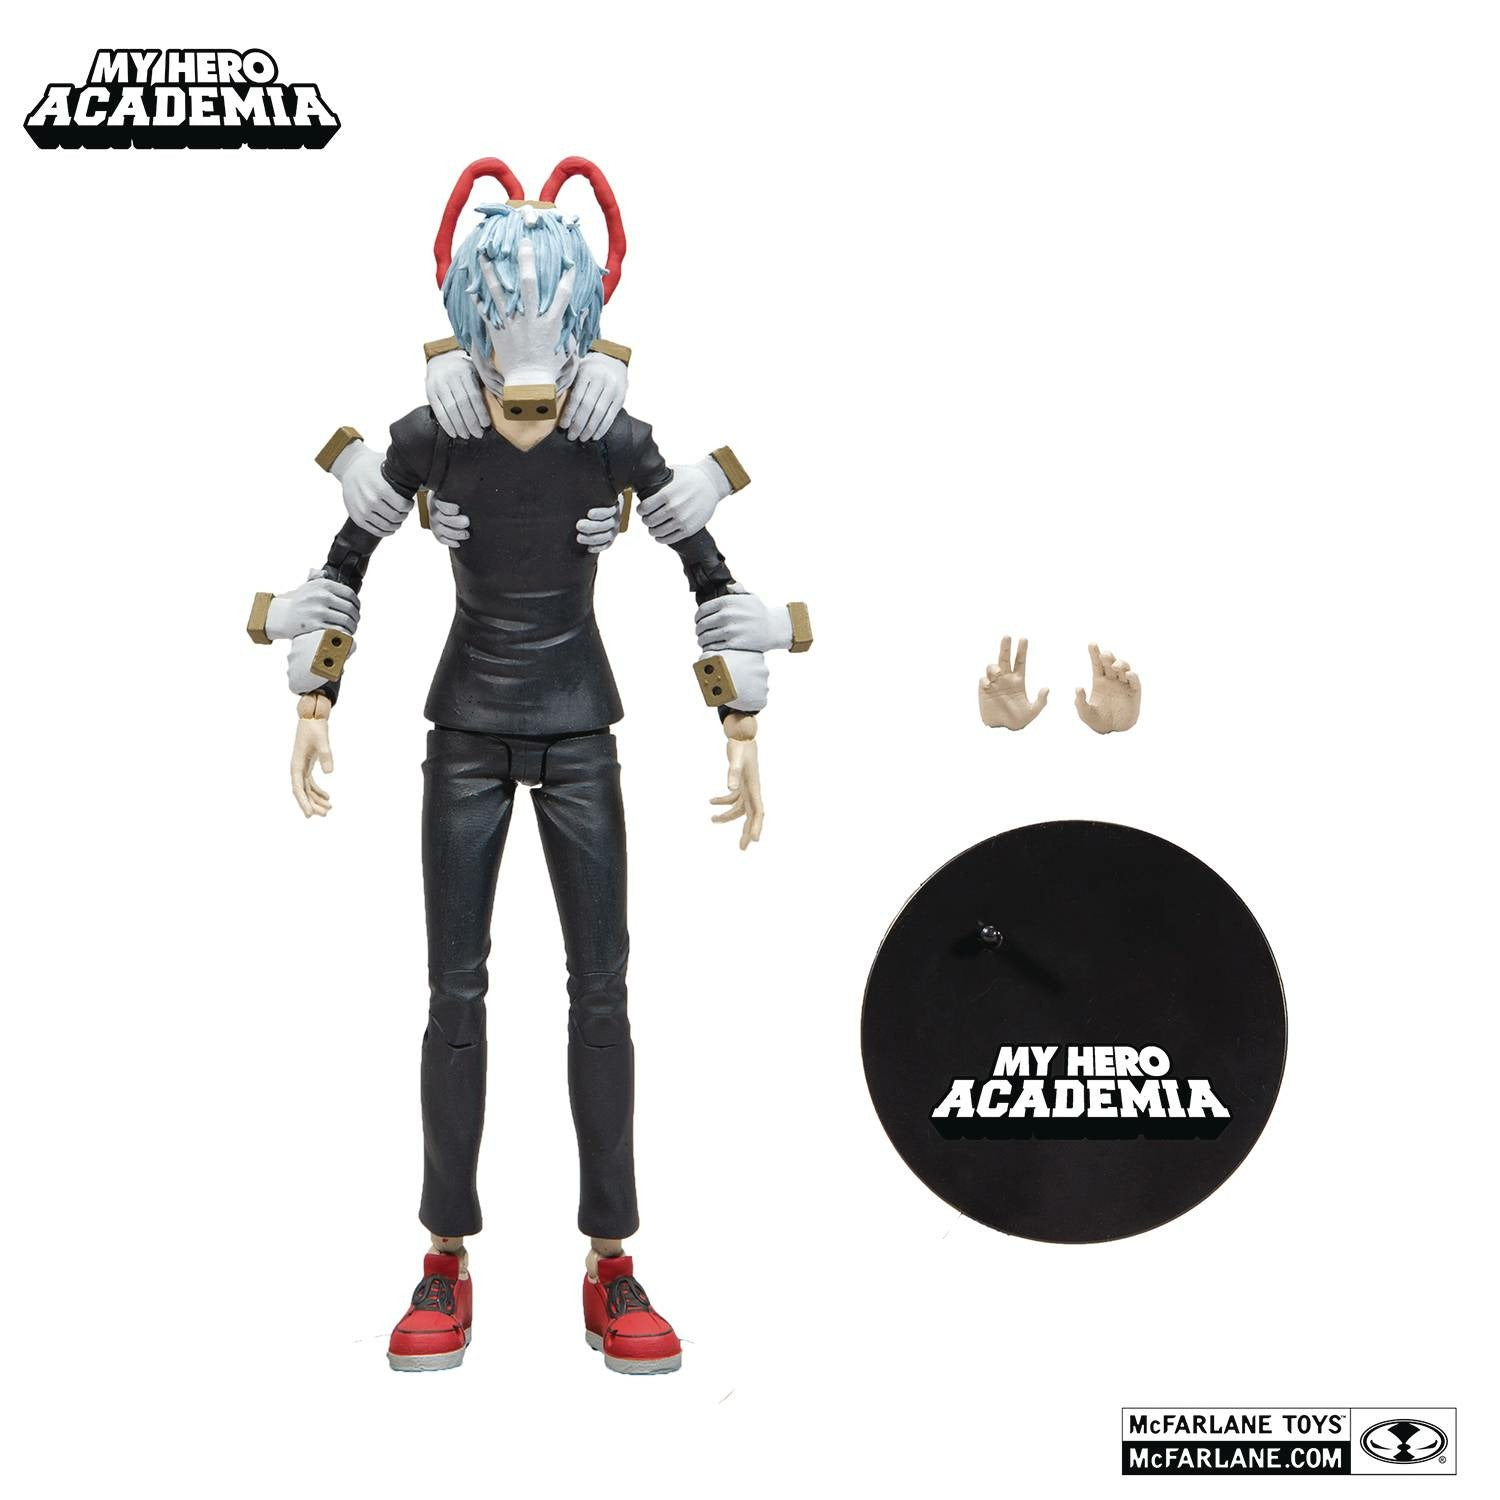 My Hero Academia Tomura Shigaraki 7 inch Action Figure